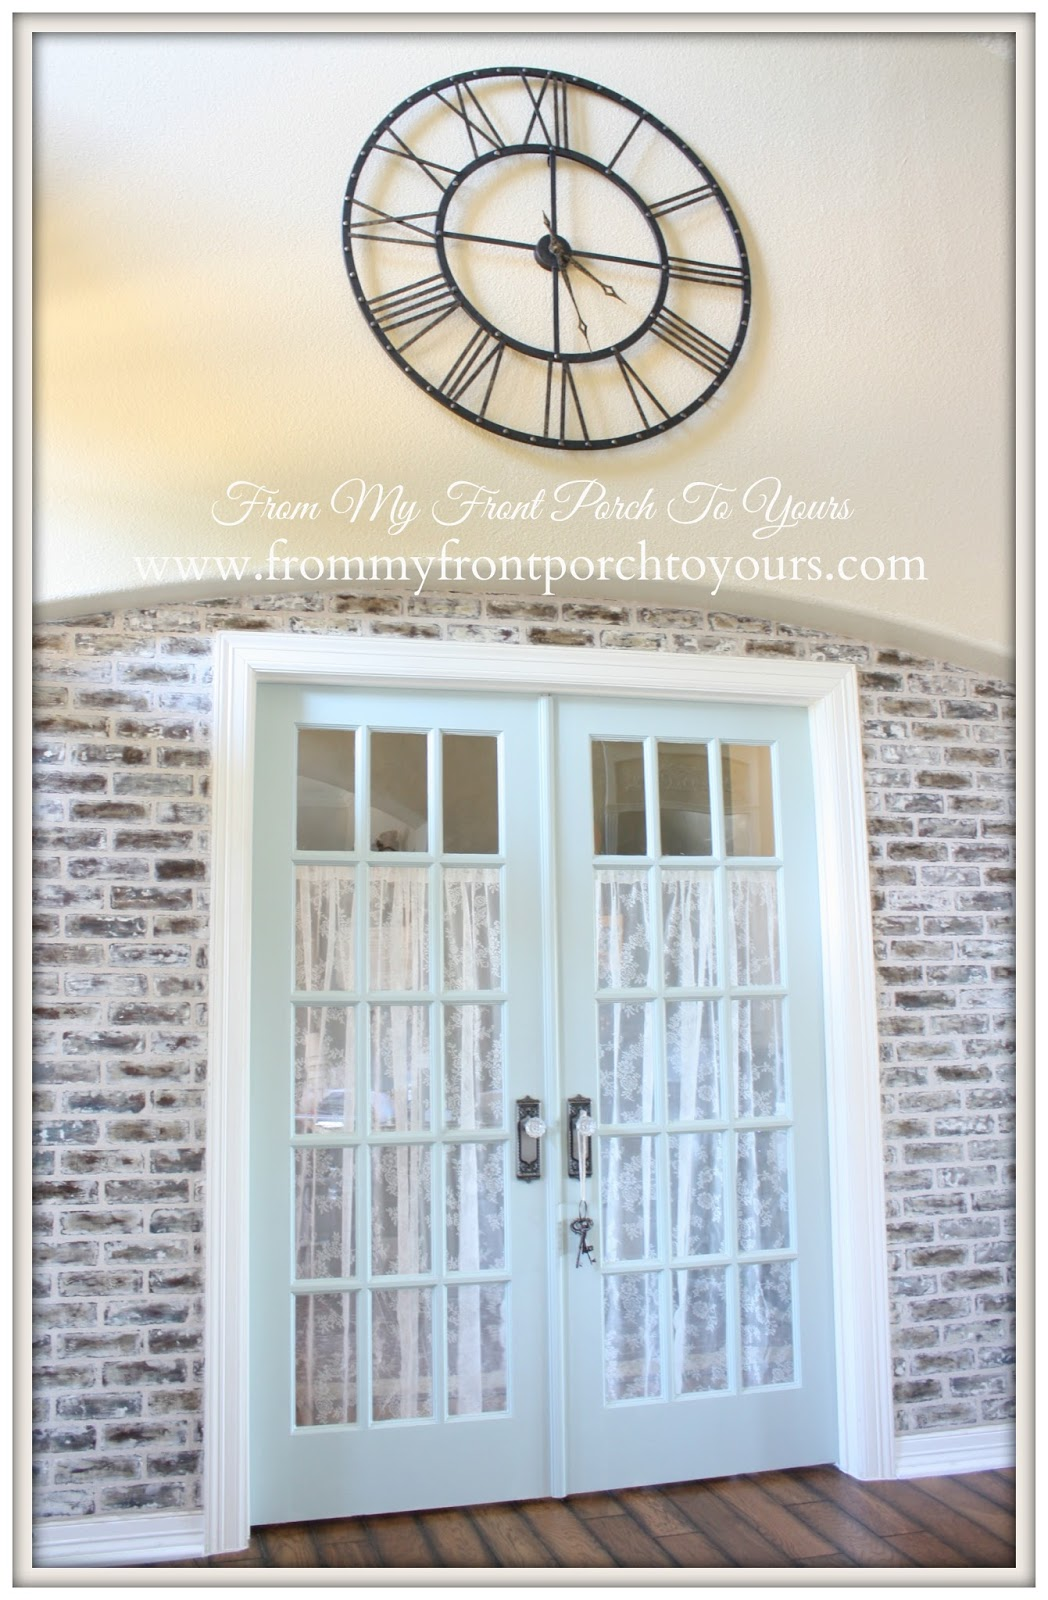 Alvin Spets Lace CurtainsFrench Farmhouse-XLarge Wall Clock Kirklands-DIY Faux Brick Wall- From My Front Porch To Yours